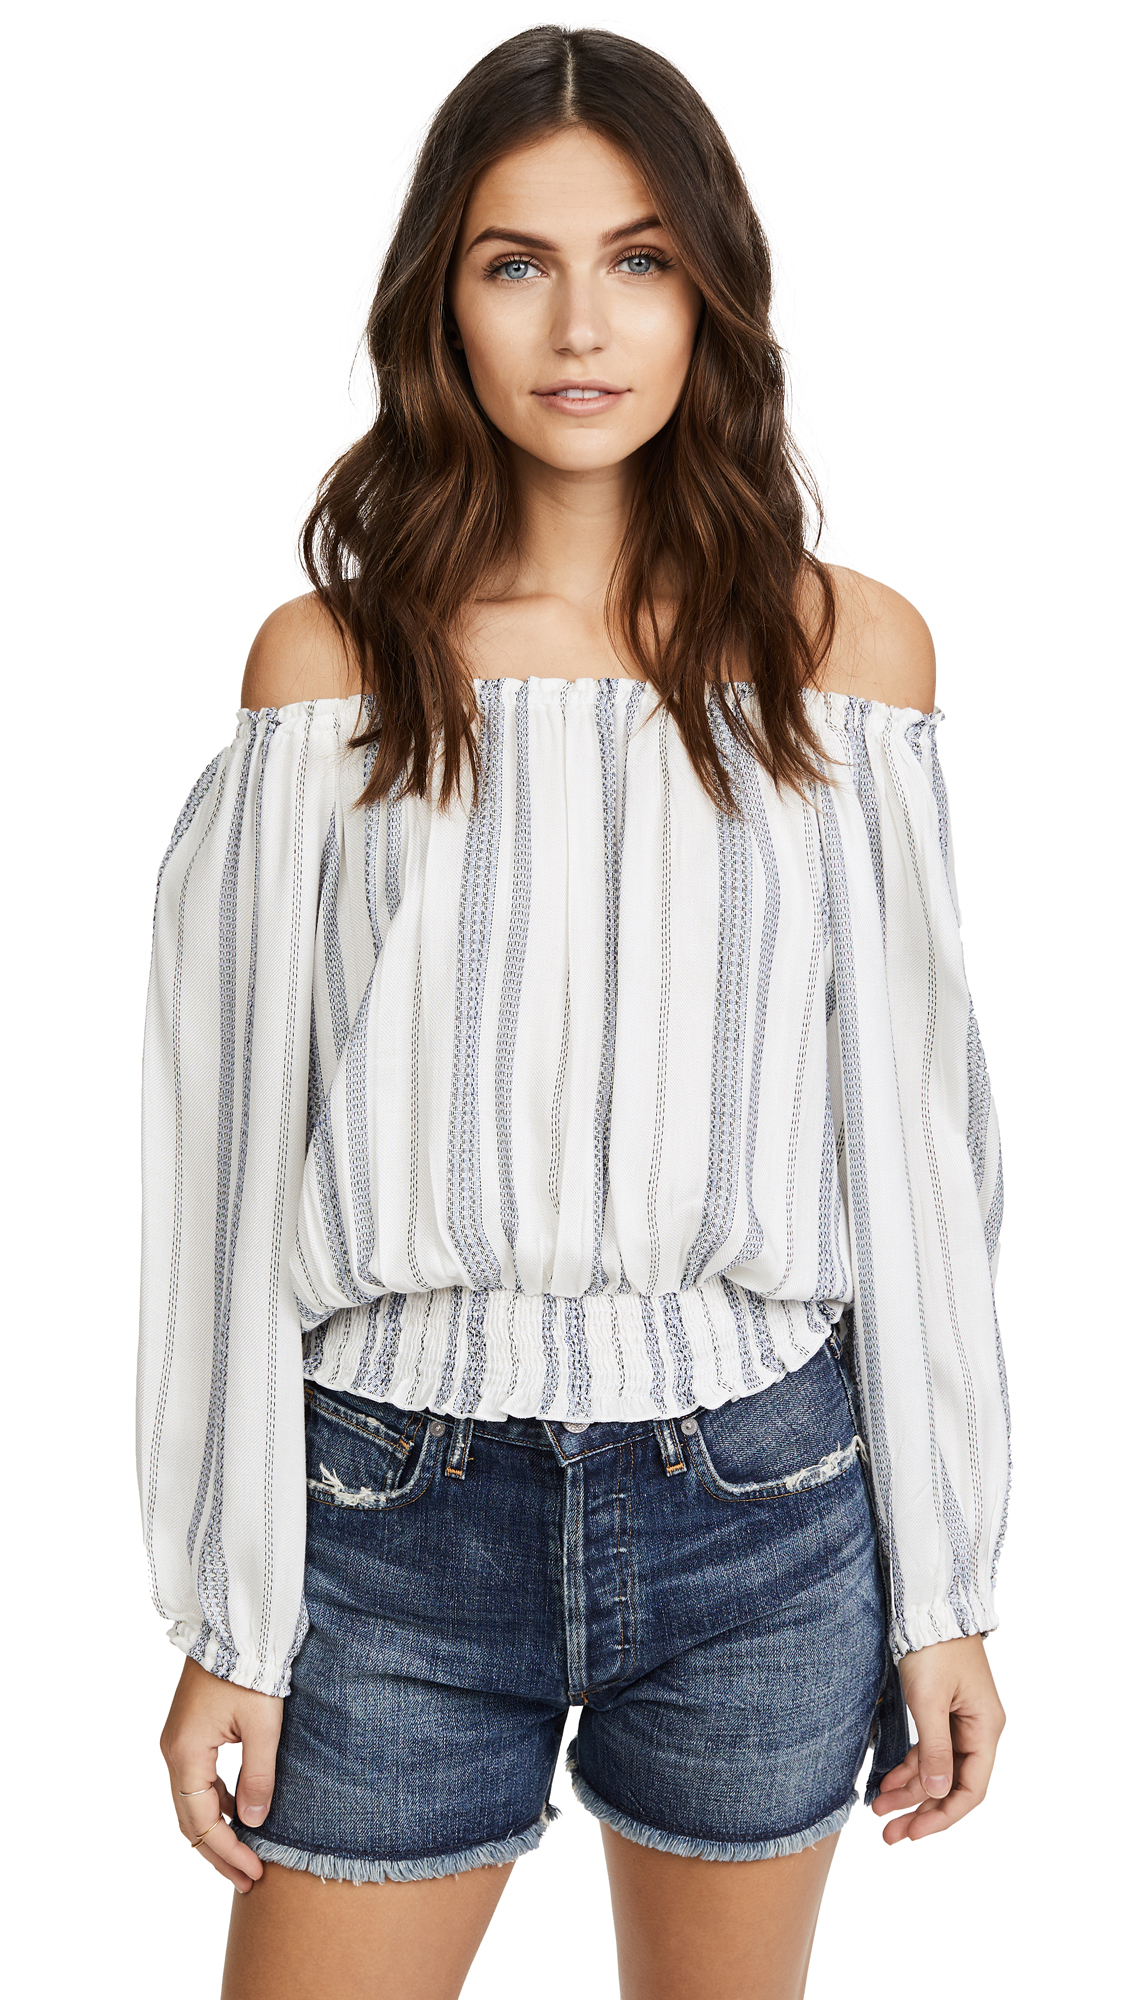 Melissa Odabash Adriana Top - Cream Stripe